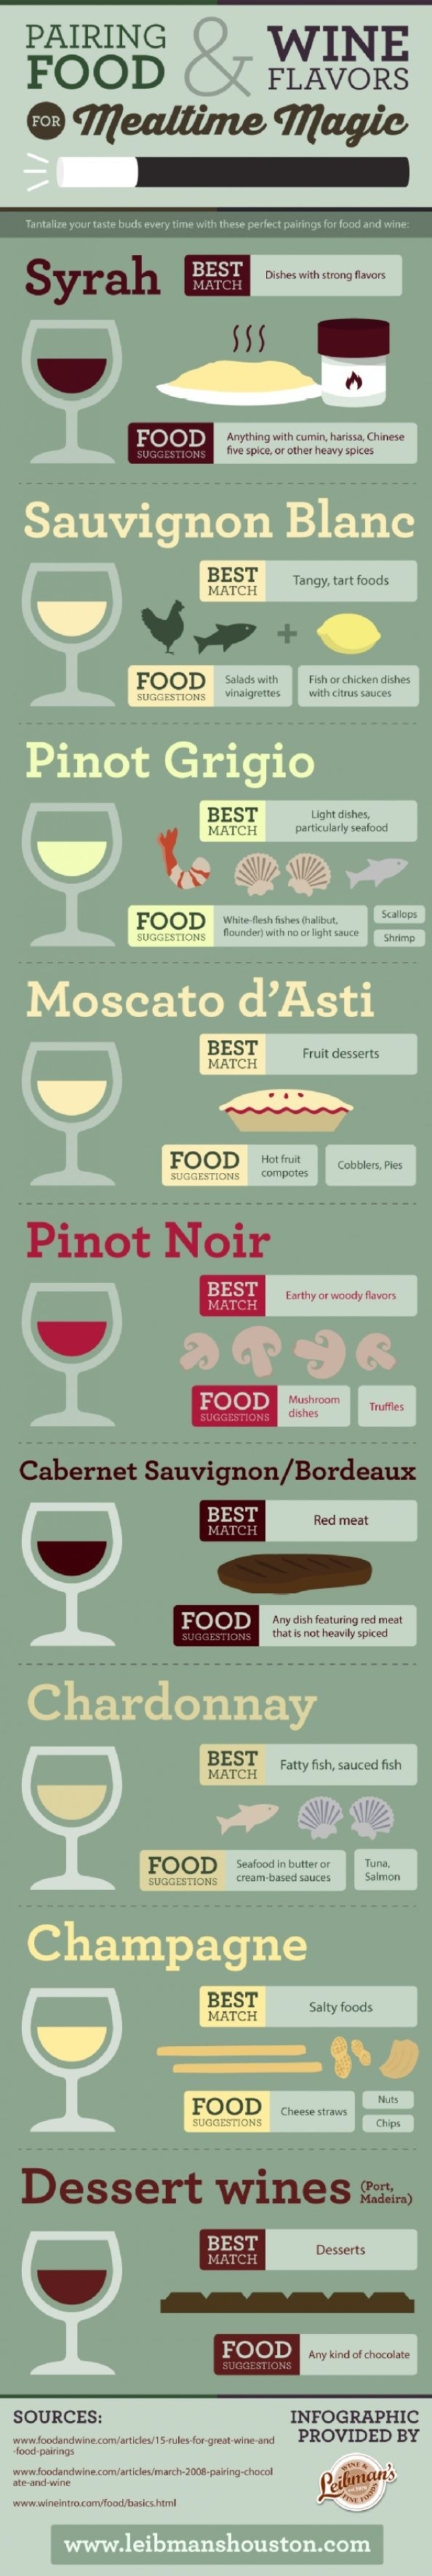 Good infographic to learn more about wines for beginners....Now this a Wine pairing infographic! Pair your wine flavors with food for an unbelievable meal.